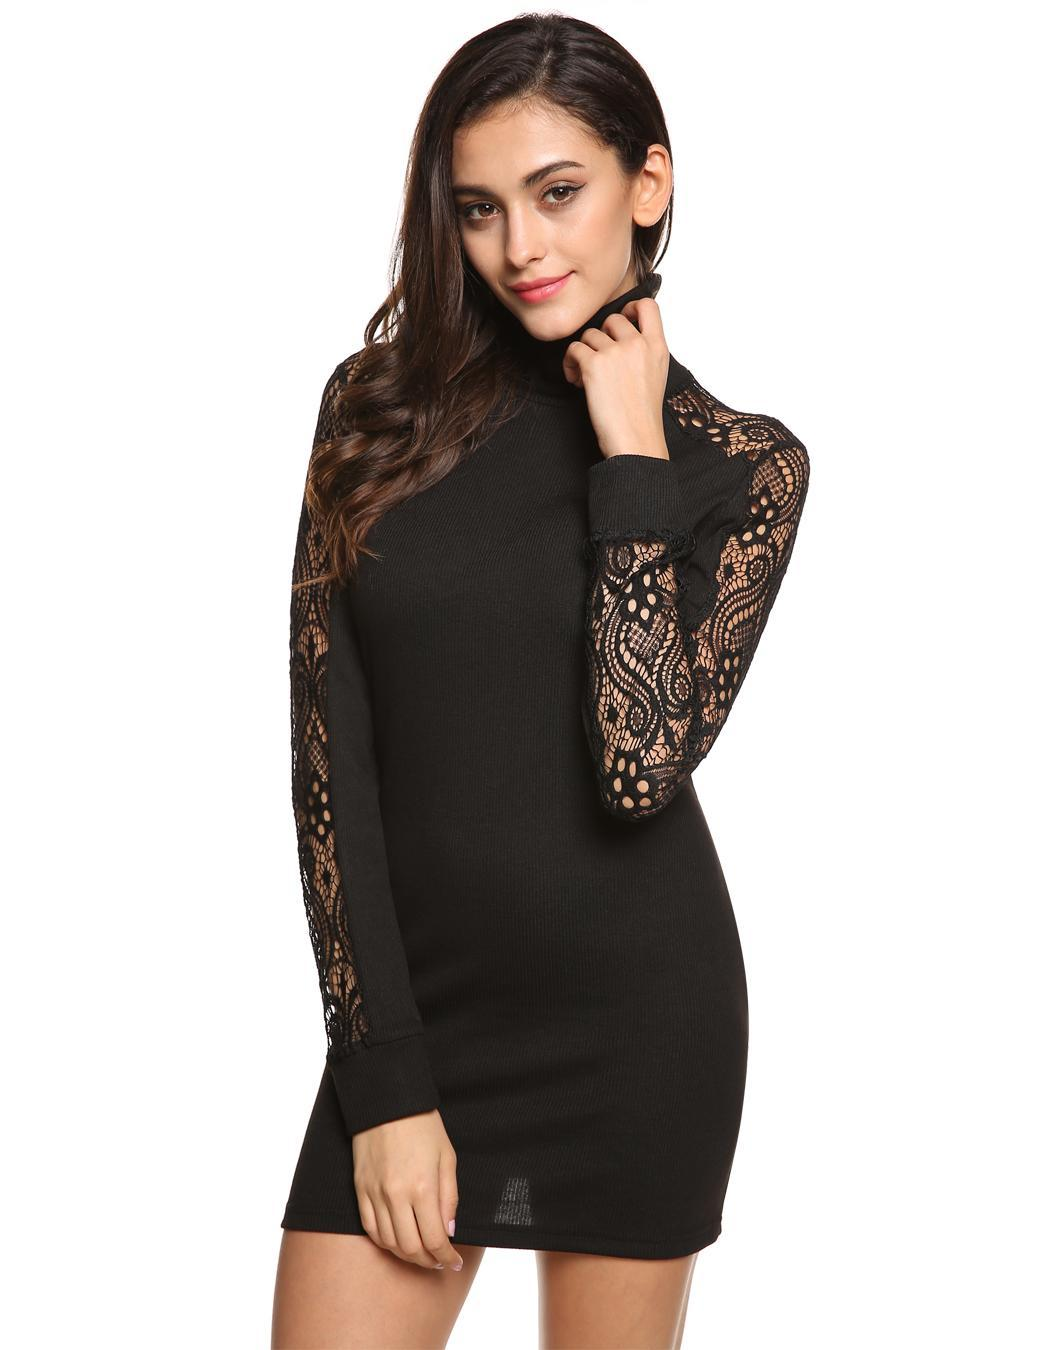 Women Sexy Black Dress Bodycon Autumn High Neck Dresses Hollow Out Long Sleeve Vestidos Robe Longue Femme Lace Knitted